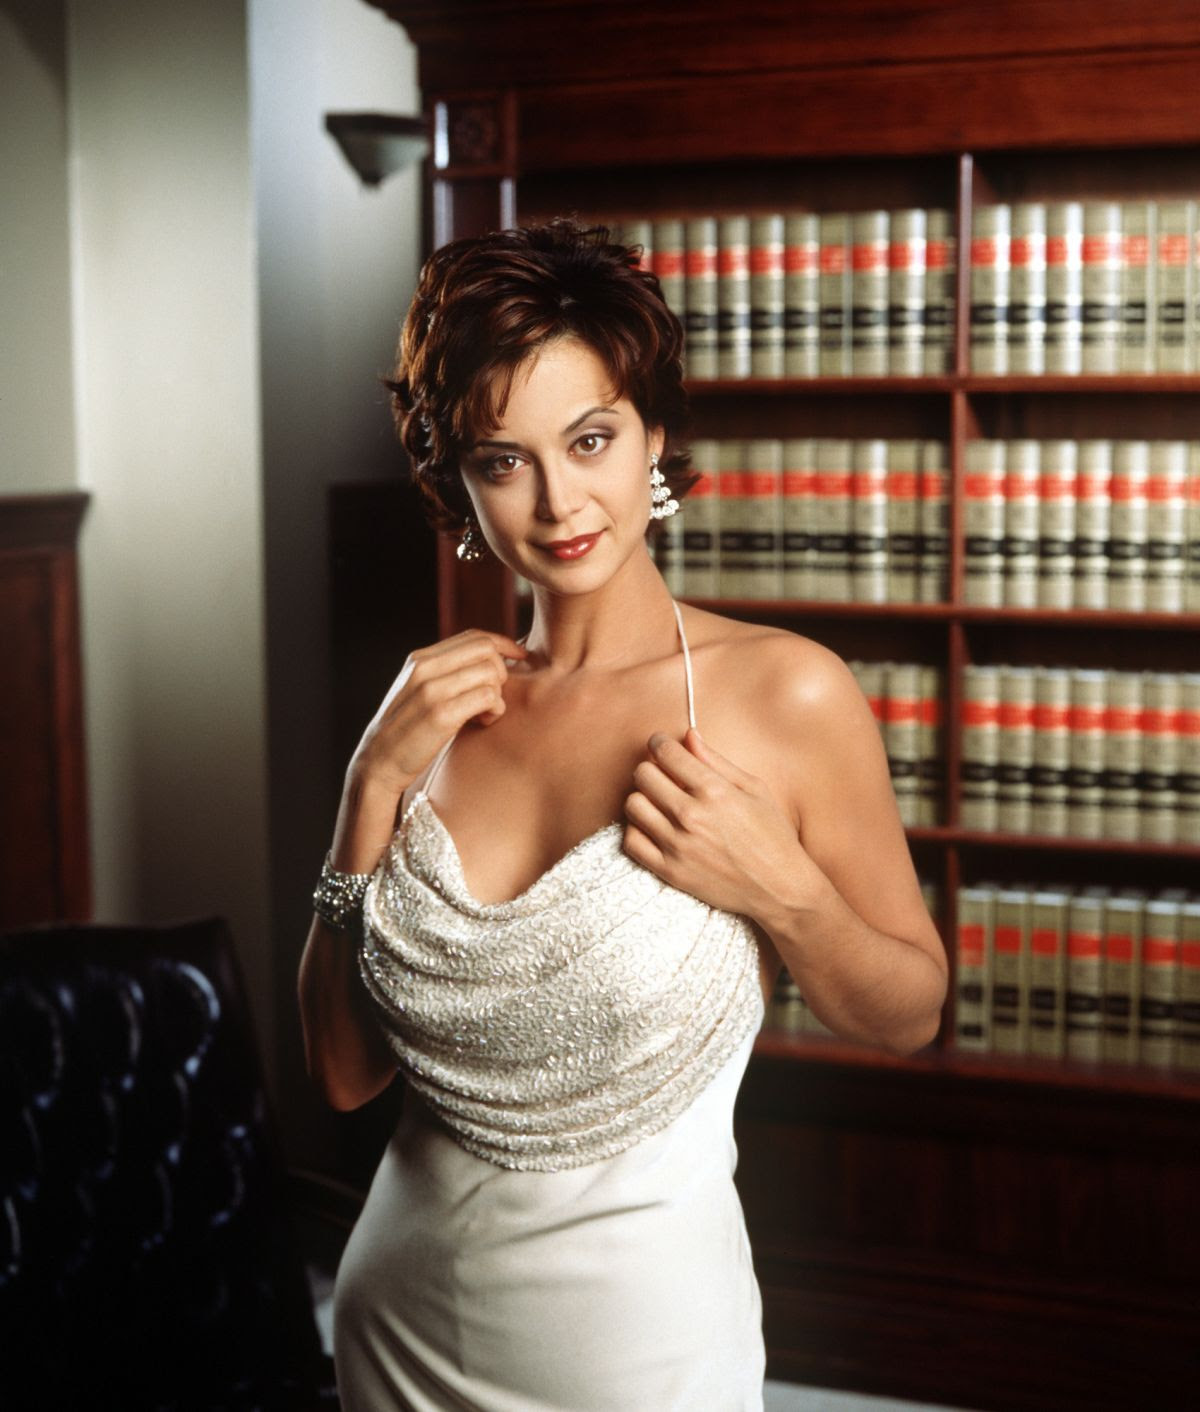 Best ffrom the Past - CATHERINE BELL by Cliff Lipson, 1997